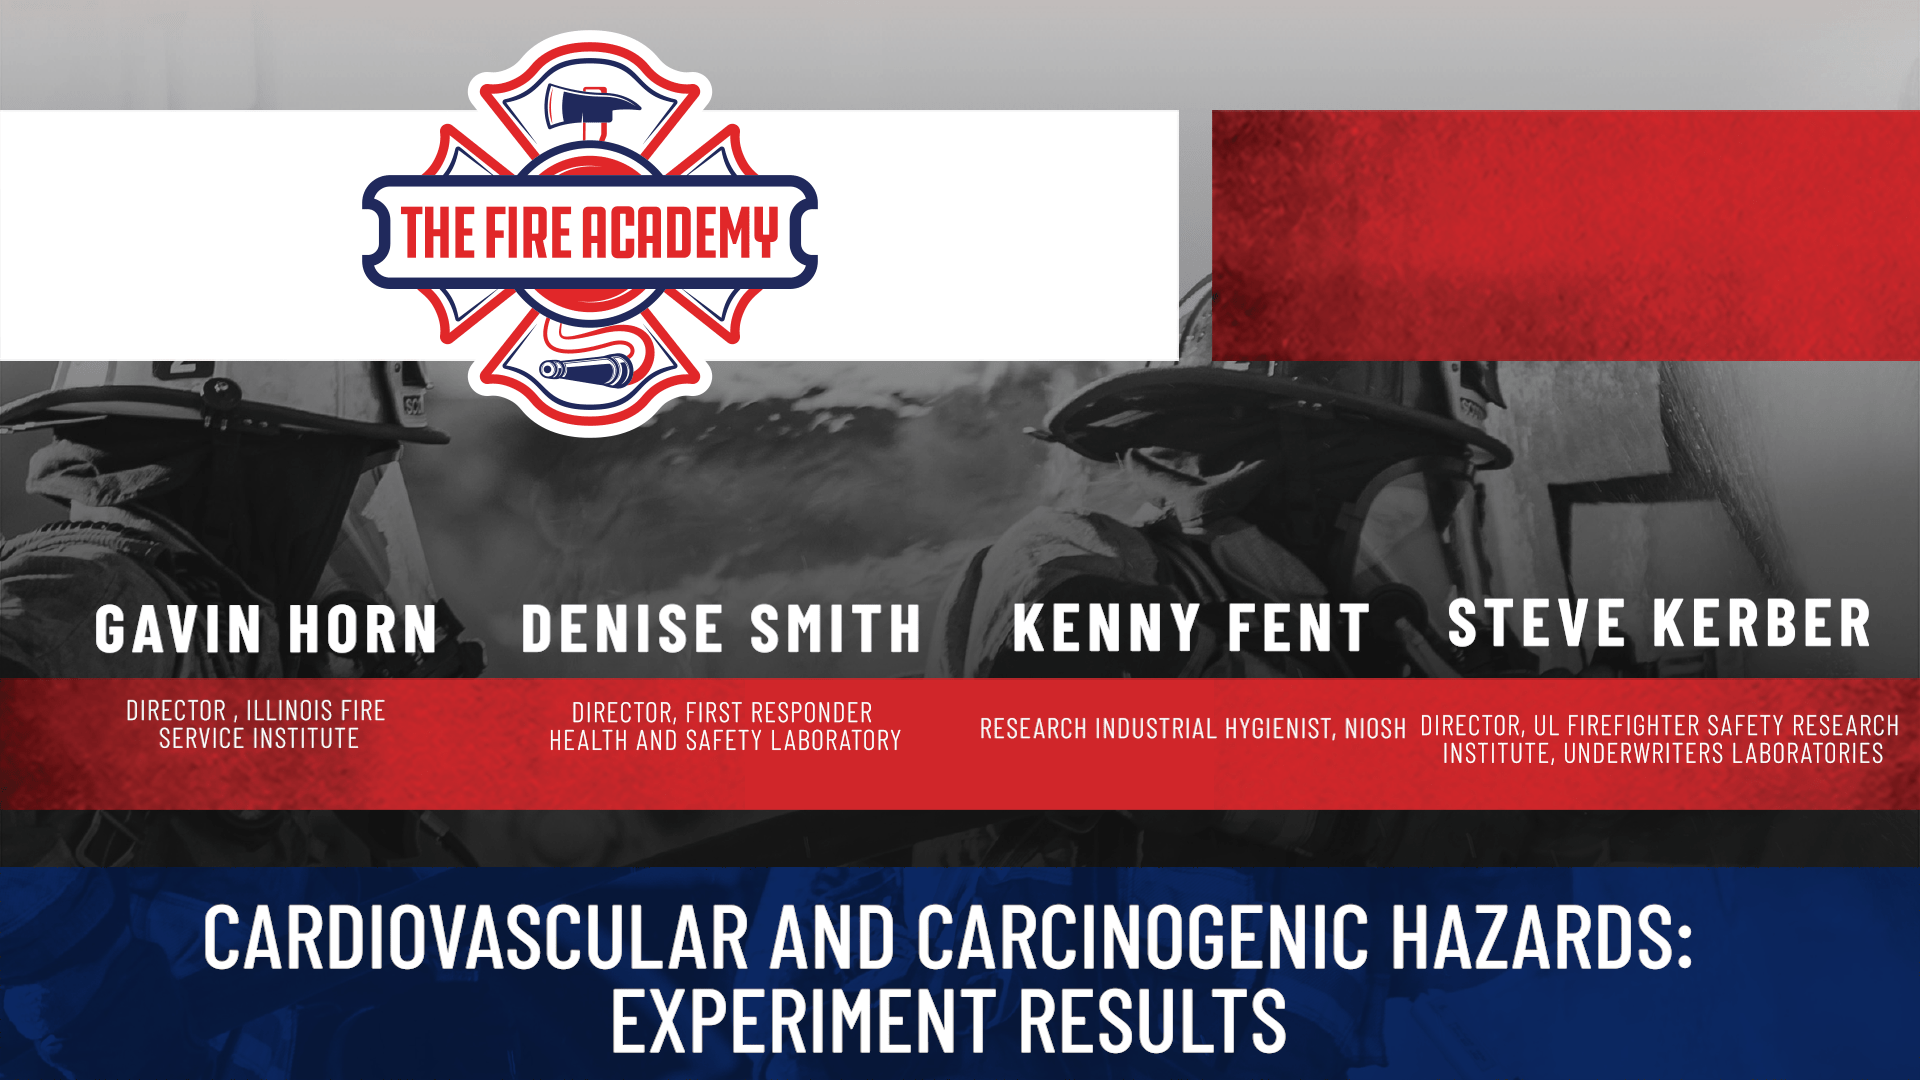 Cardiovascular and Carcinogenic Hazards: Experiment Results